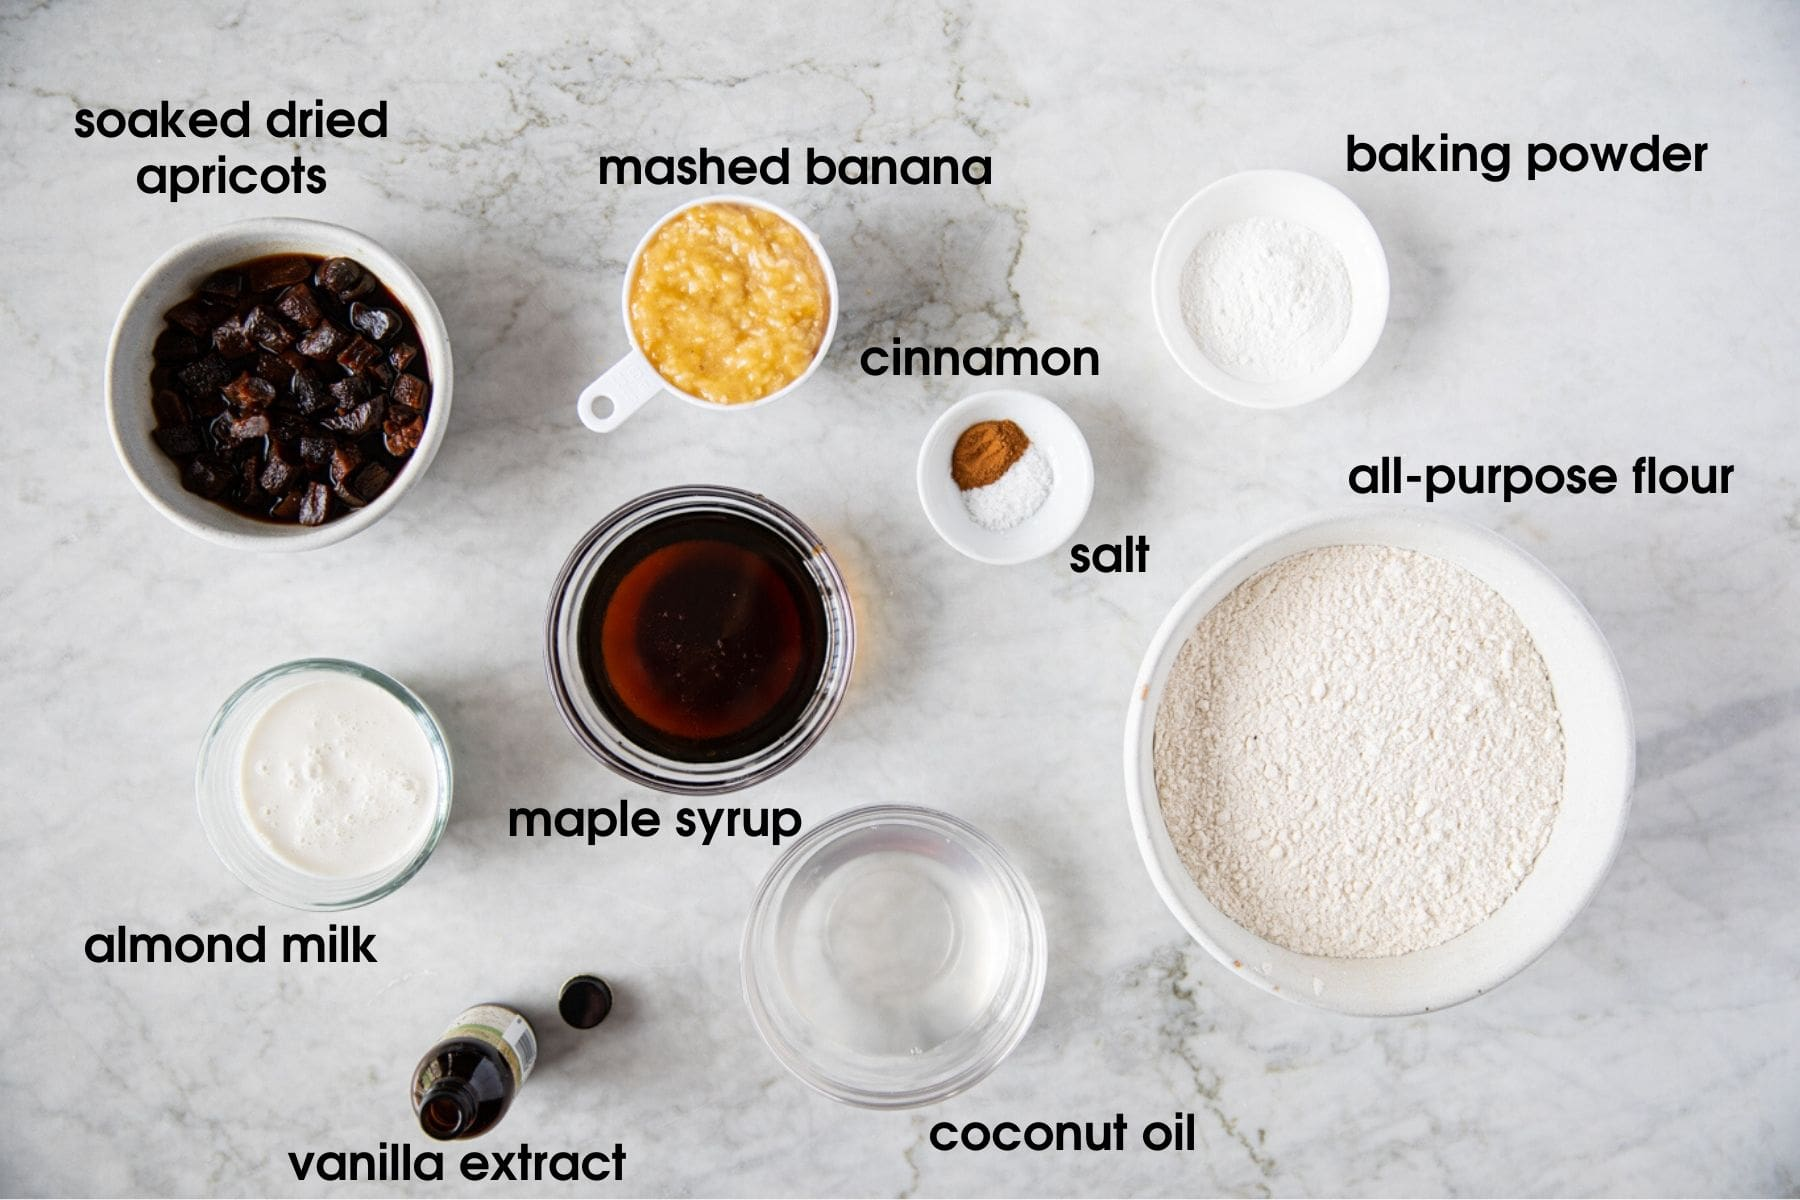 Ingredients for Vegan Banana Apricot Muffins: dried apricots, mashed banana, baking powder, cinnamon, salt, all-purpose flour, coconut oil, maple syrup, vanilla extract, almond milk